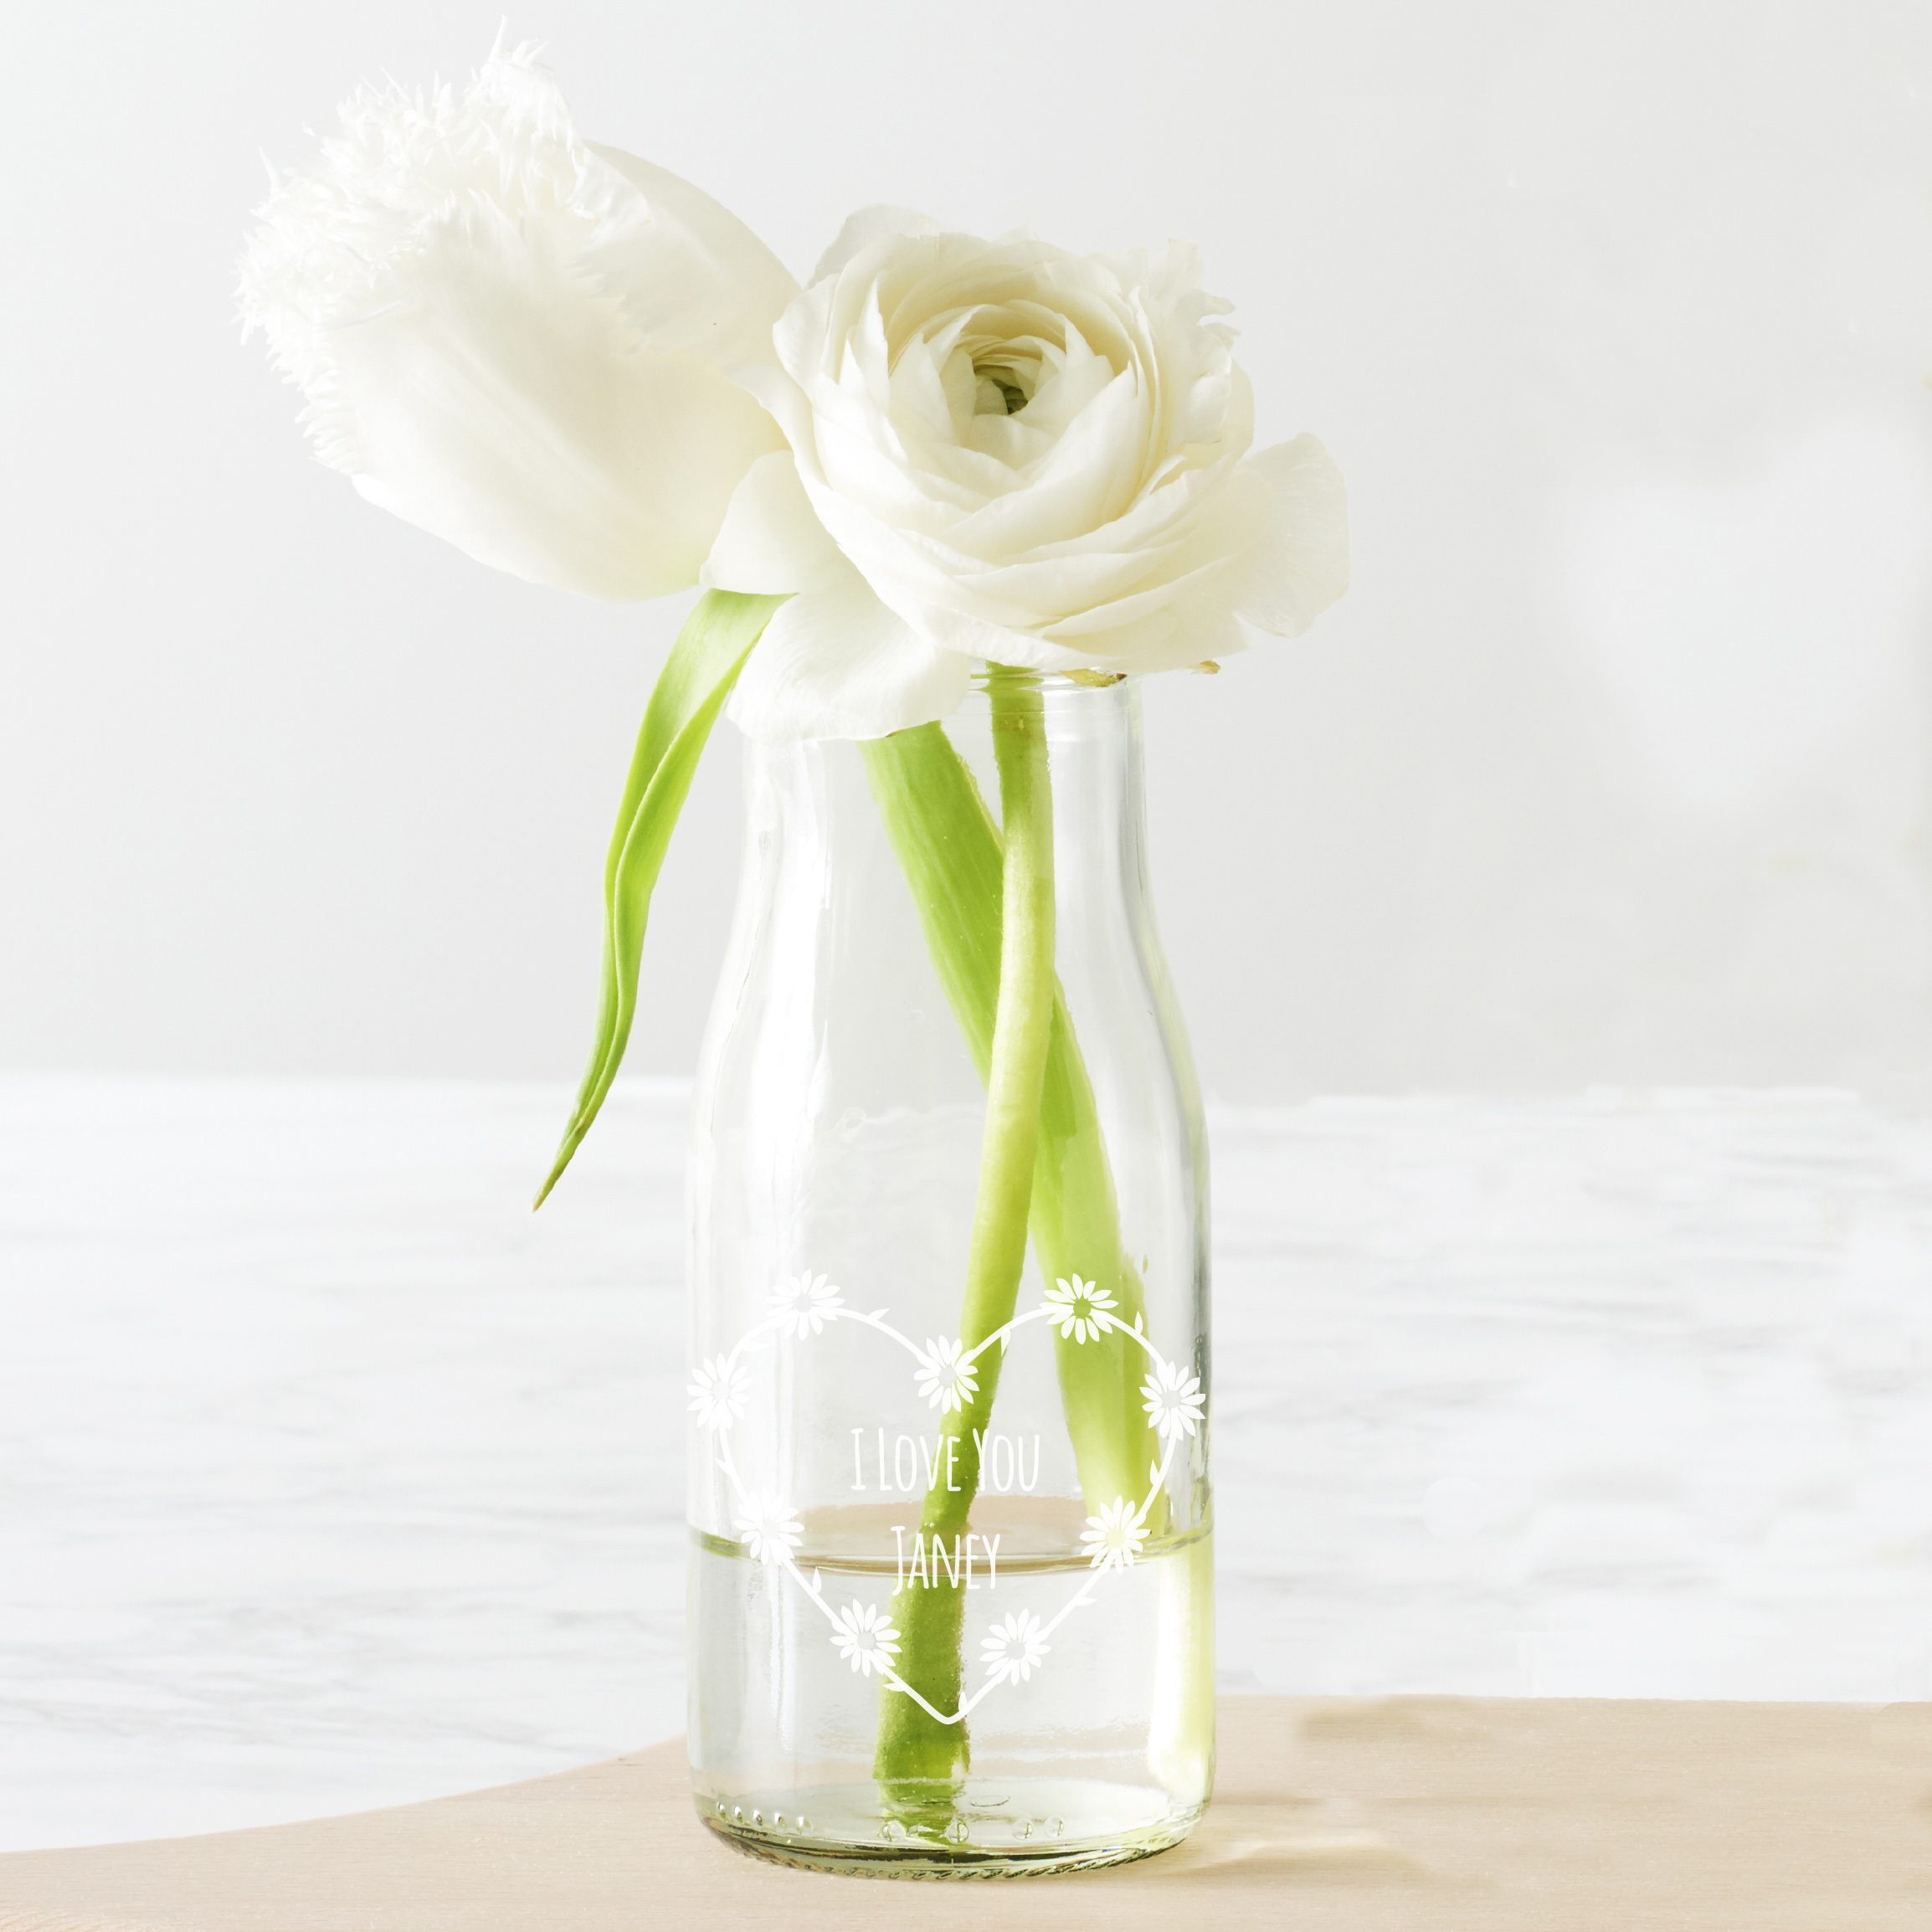 Personalised Daisy Chain Bottle Bud Vase